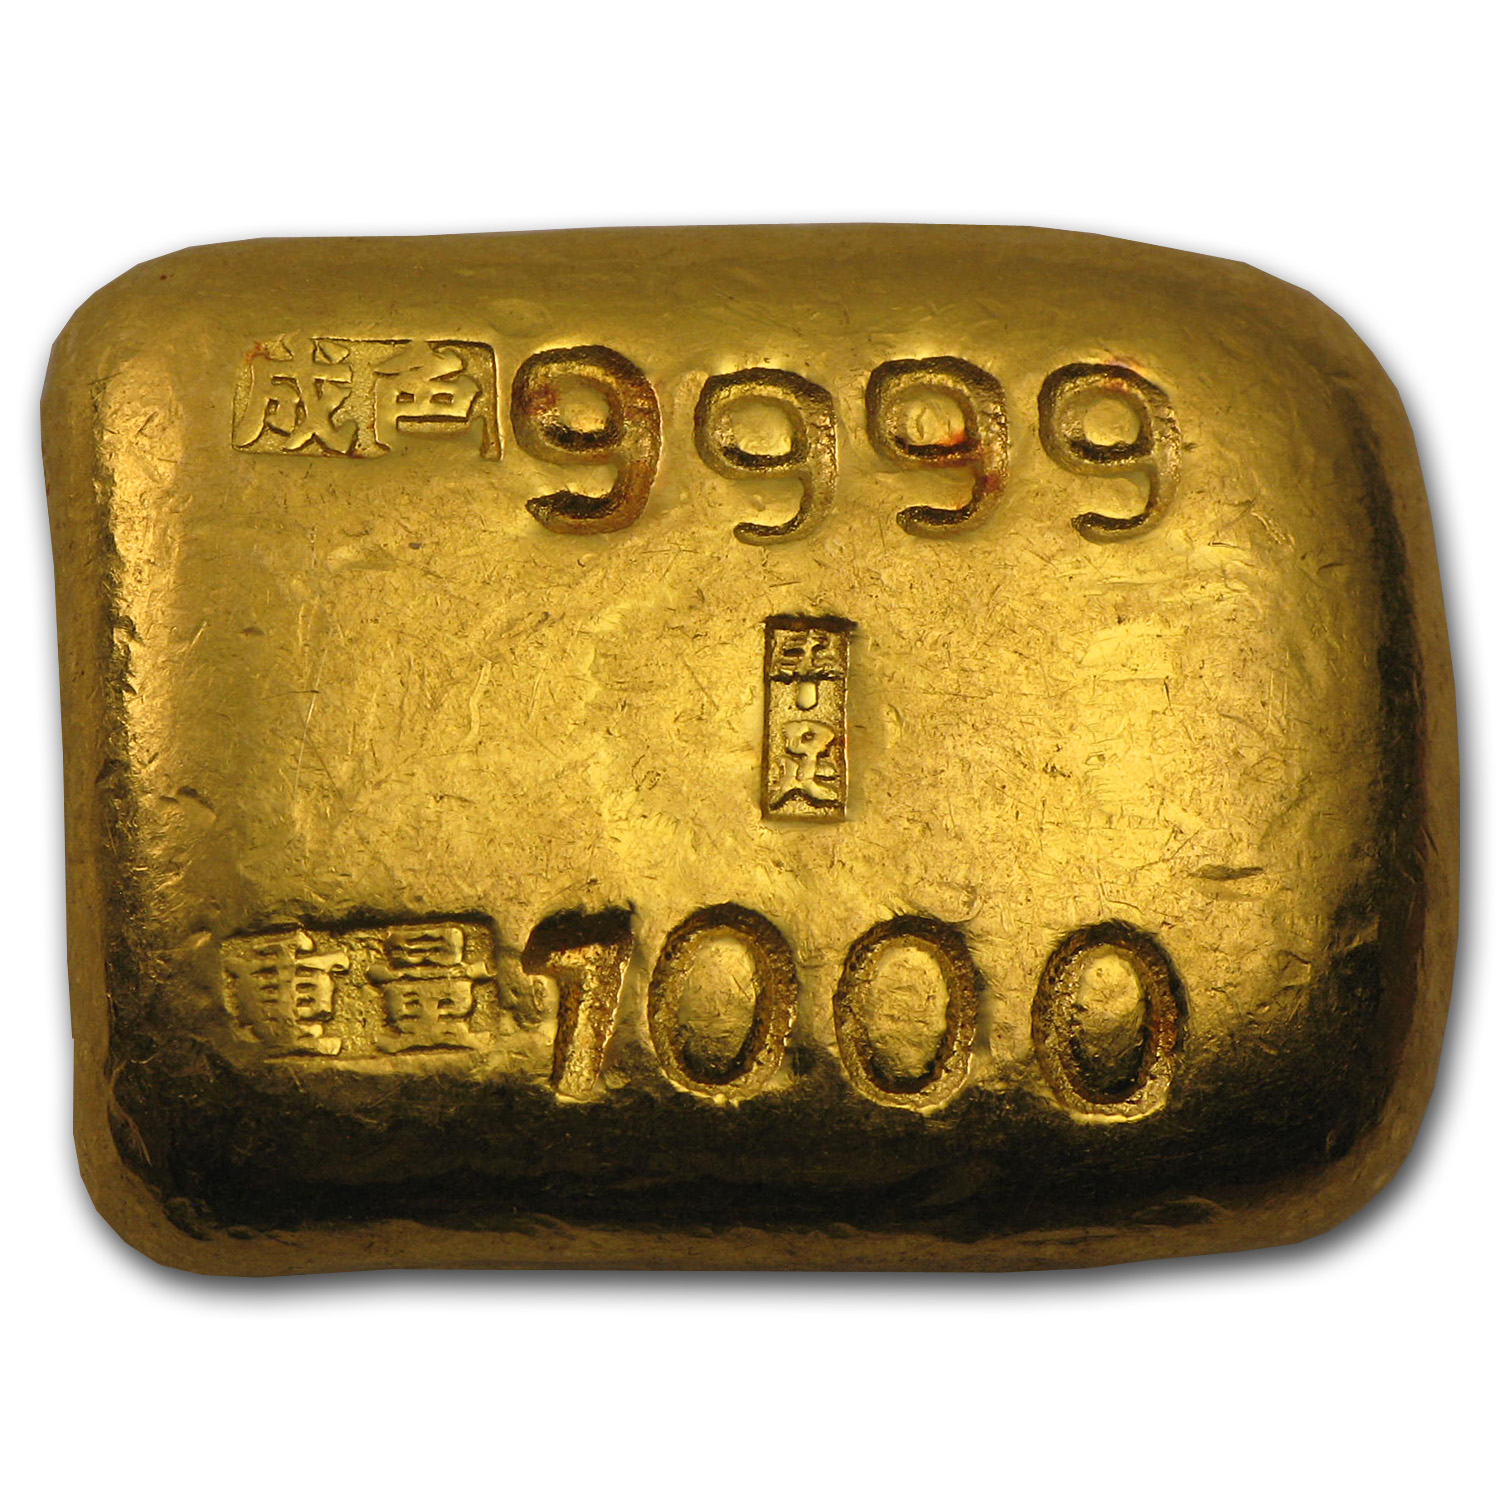 1 Tael Gold Bar - Chinese Biscuit (1.206 oz)